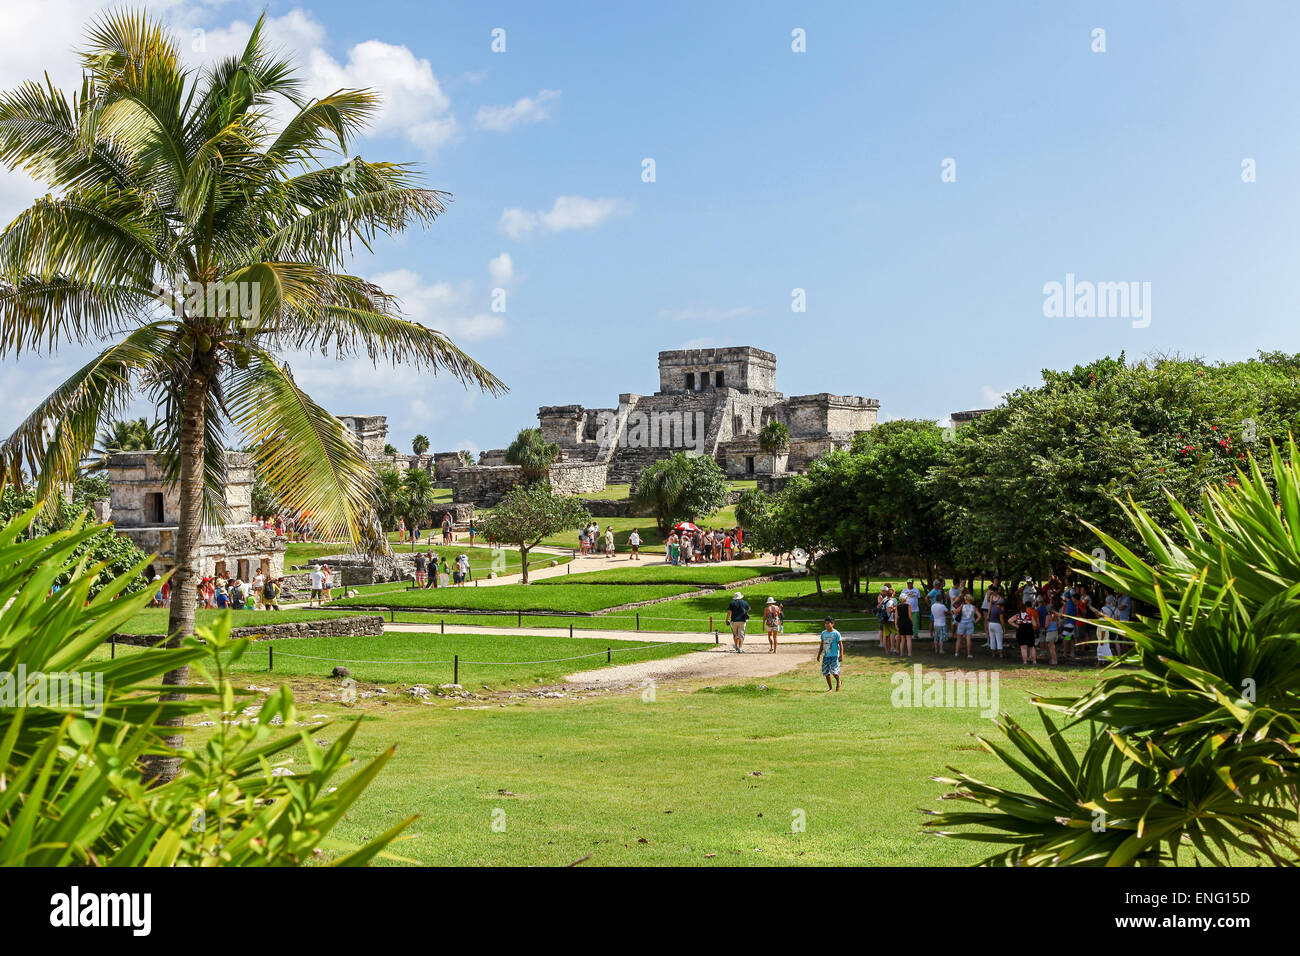 tulum-ruins-the-site-of-a-mayan-ancient-civilization-on-the-yucatn-ENG15D.jpg